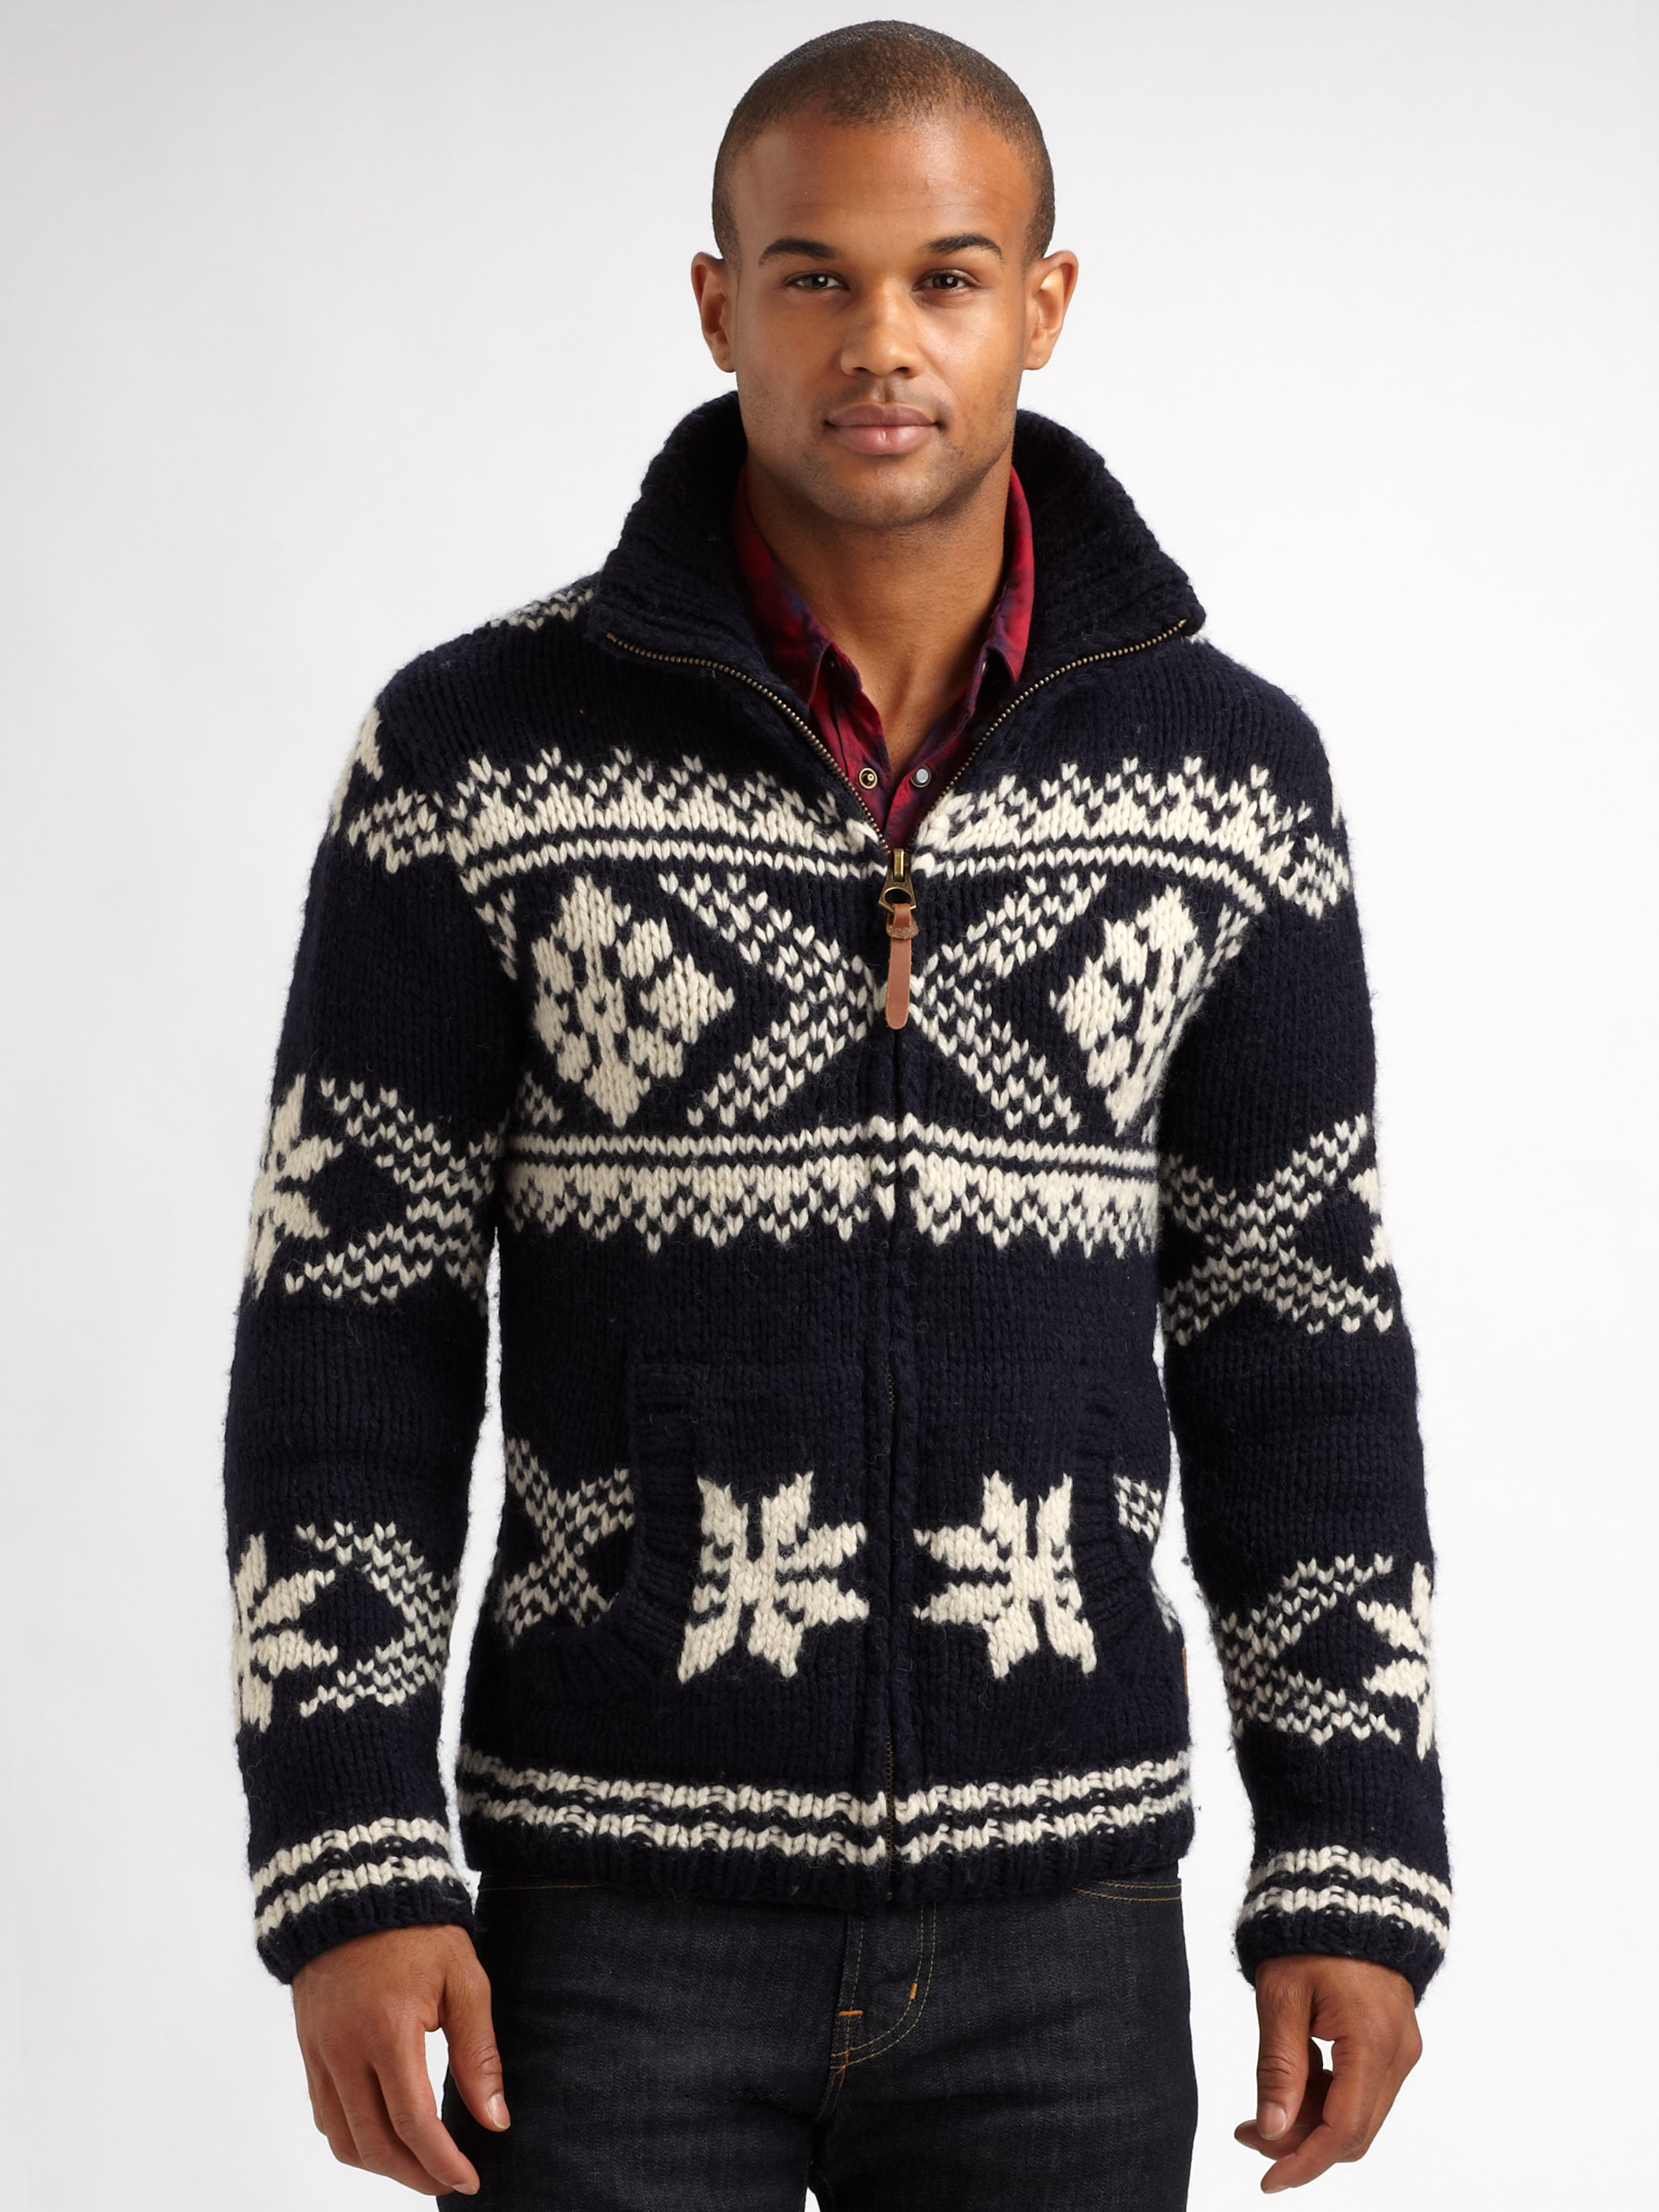 Find great deals on eBay for Snowflake Sweater in Women's Clothing and Sweaters. Shop with confidence.